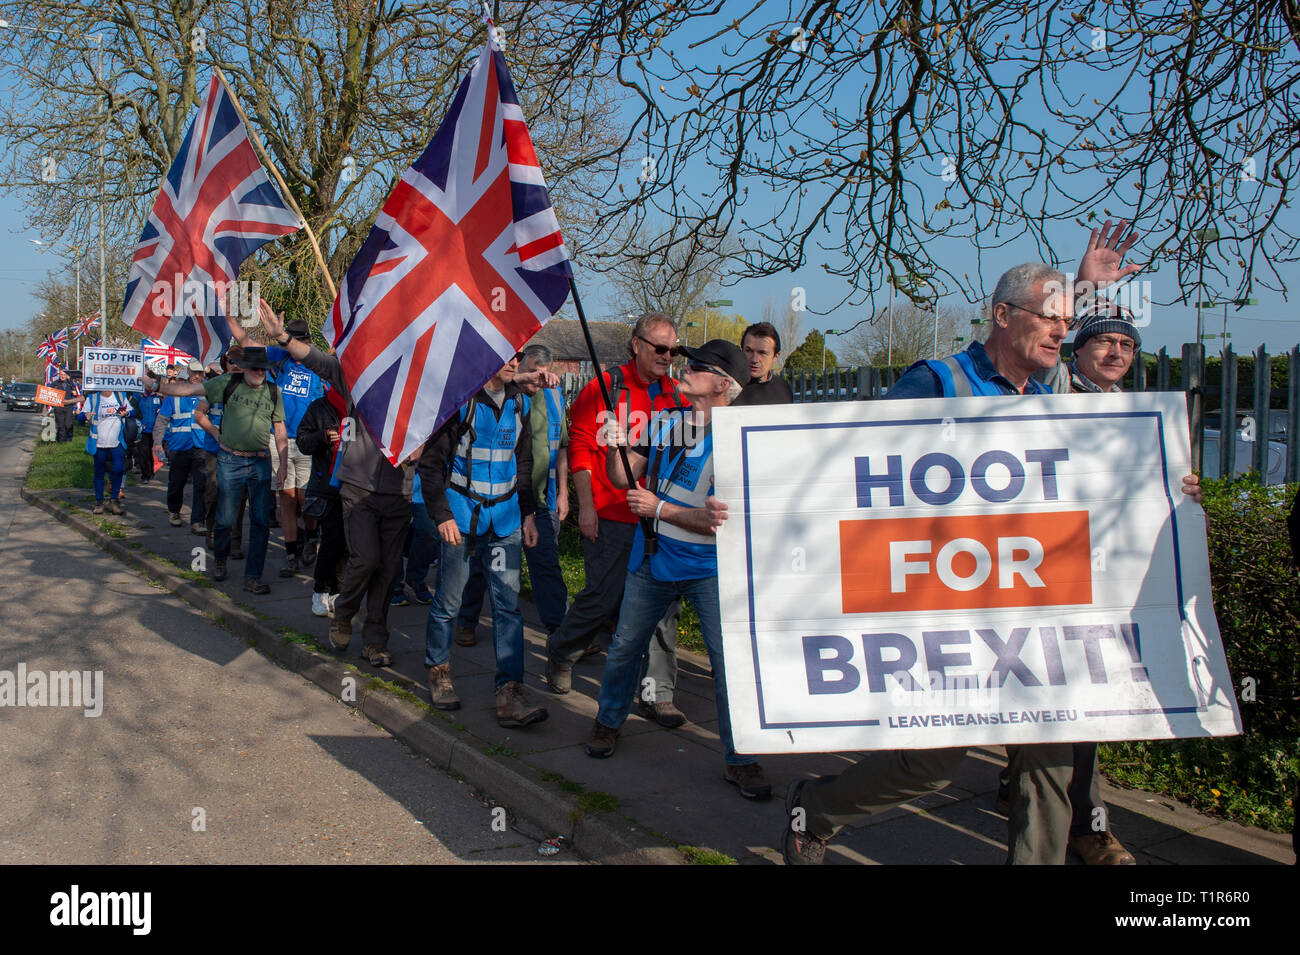 Aylesbury, United Kingdom. 28 March 2019. The pro Brexit campaign 'March for Leave' sets off from Aylesbury led by Leave Means Leave chairman John Longworth. Credit: Peter Manning/Alamy Live News Stock Photo